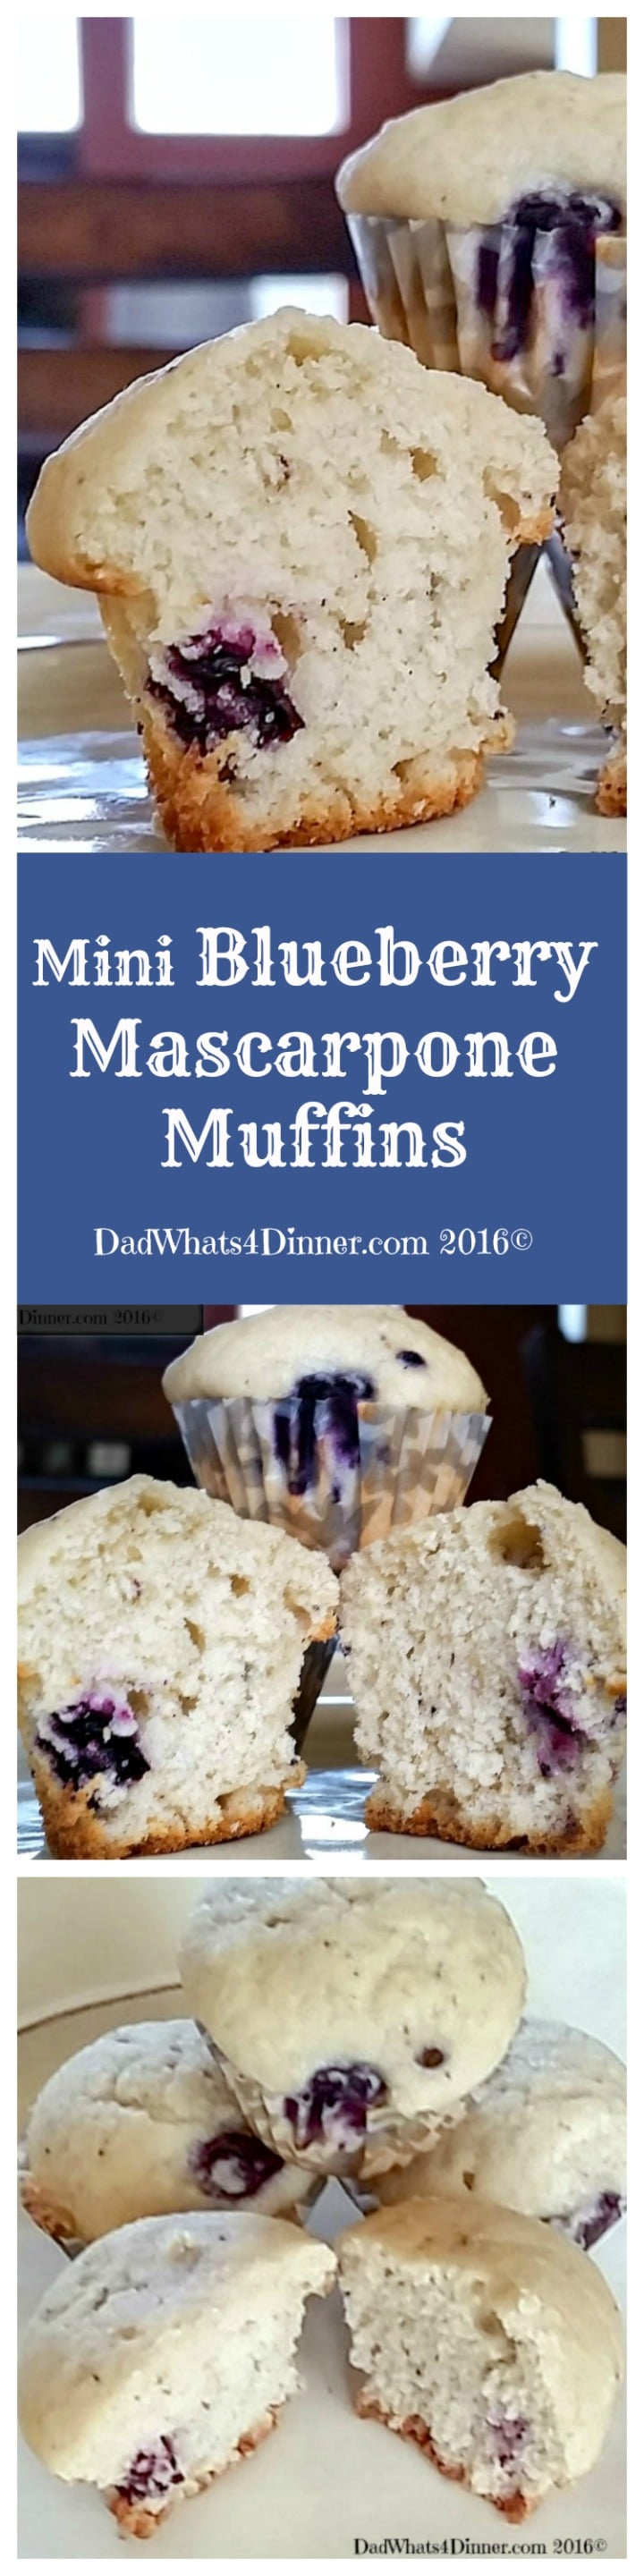 My Blueberry Mascarpone Muffins are extra creamy and perfect for breakfast, brunch or an afternoon snack! Kids will love these mini muffins. www.dadwhats4dinner.com